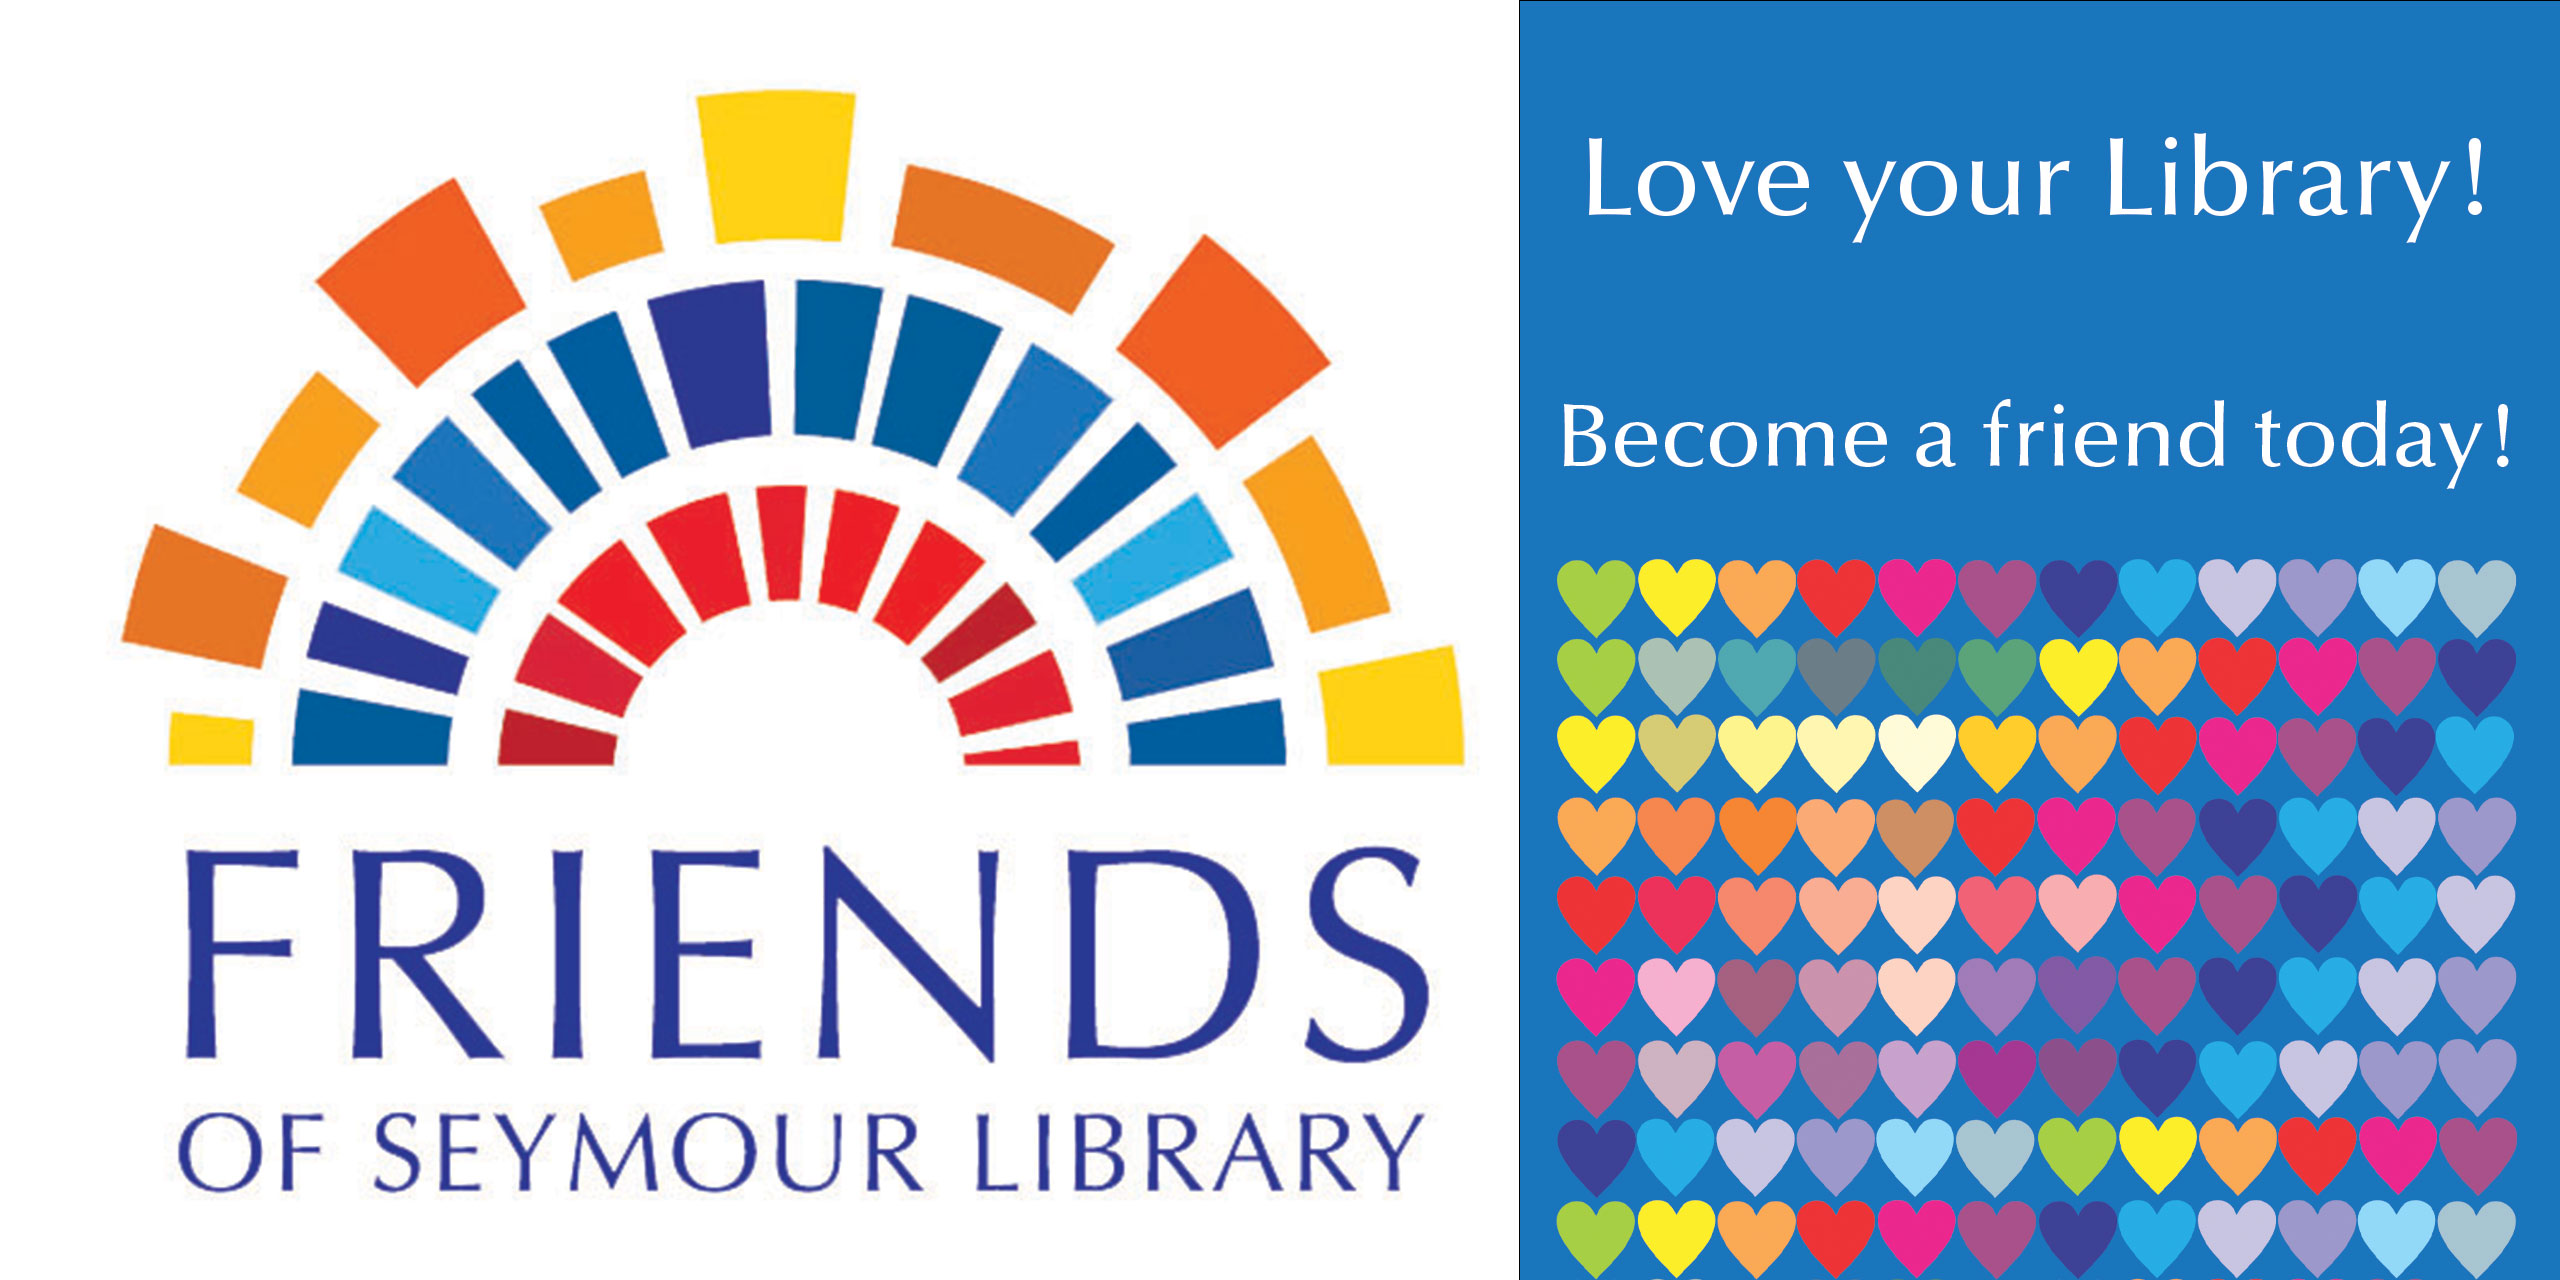 Friends of Seymour Library